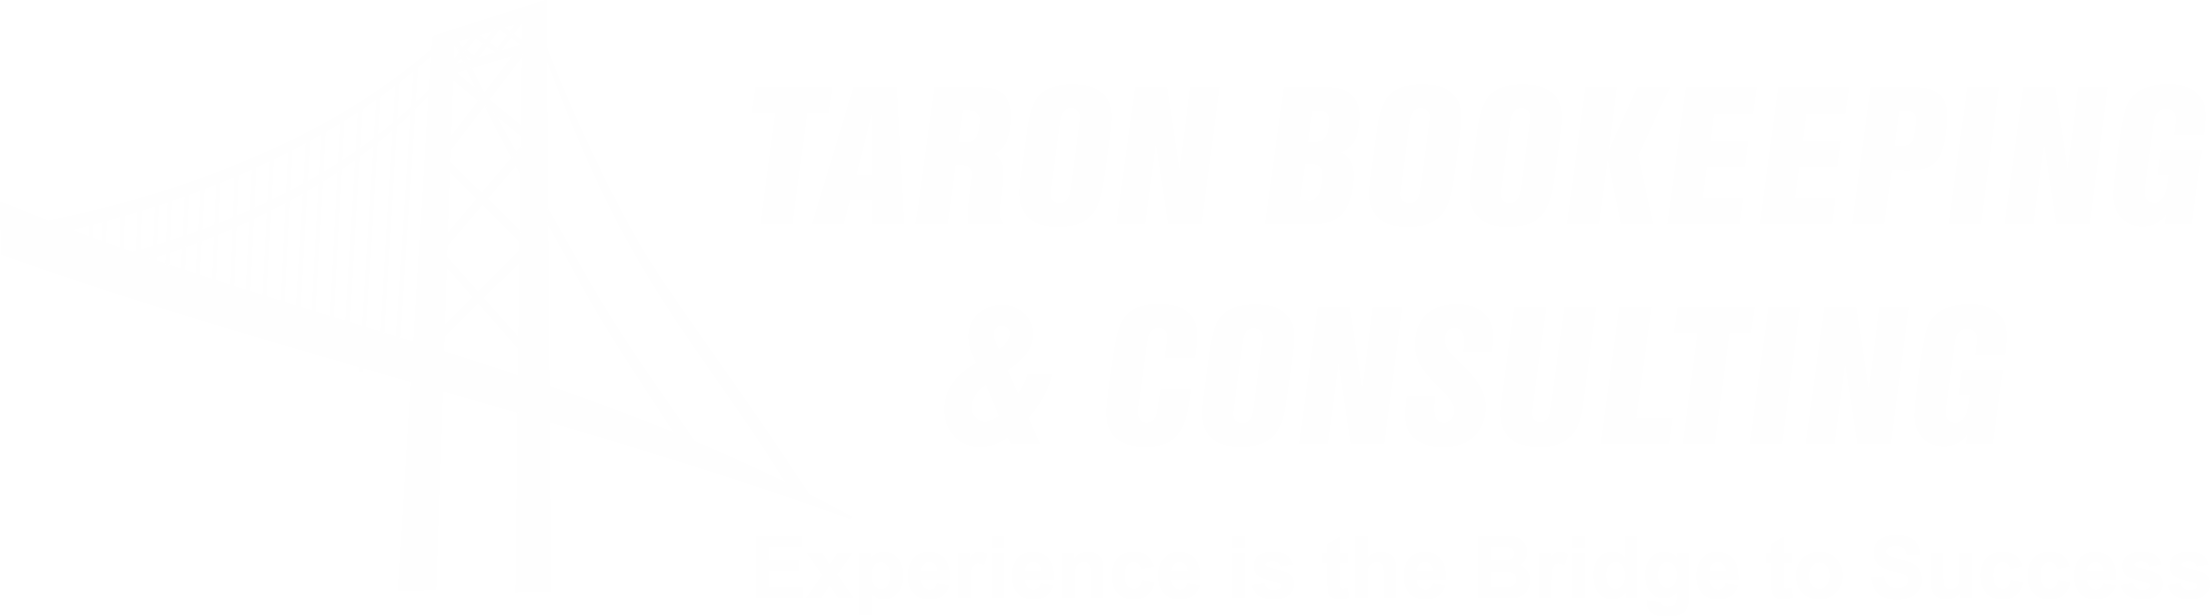 Taron Bookkeeping & Consulting